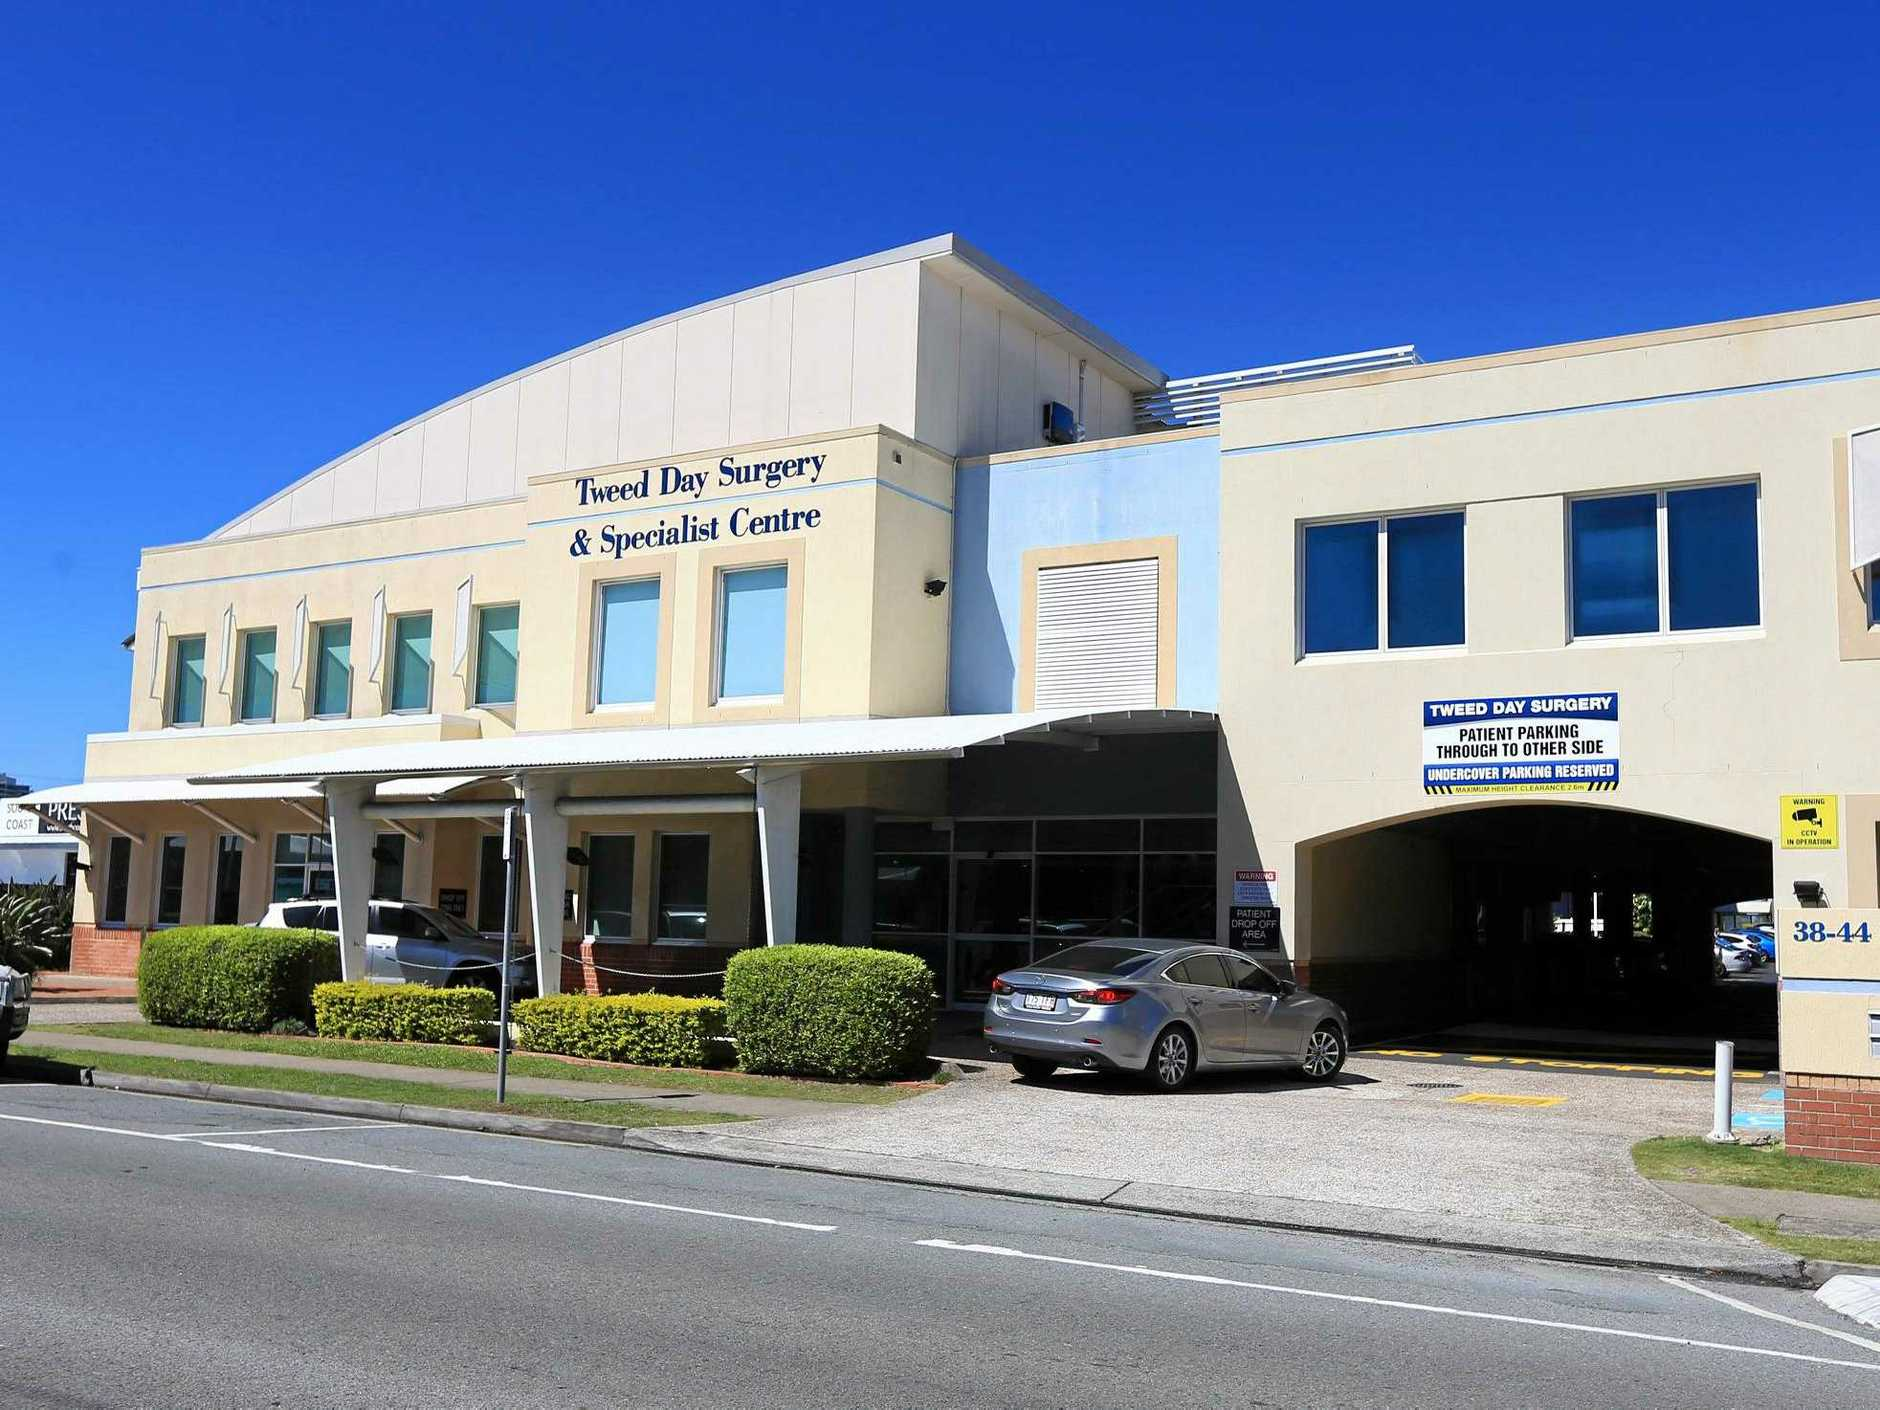 RUNNING THE GAUNTLET: A local doctor is worried about the safety of his patients outside Tweed Day Surgery.